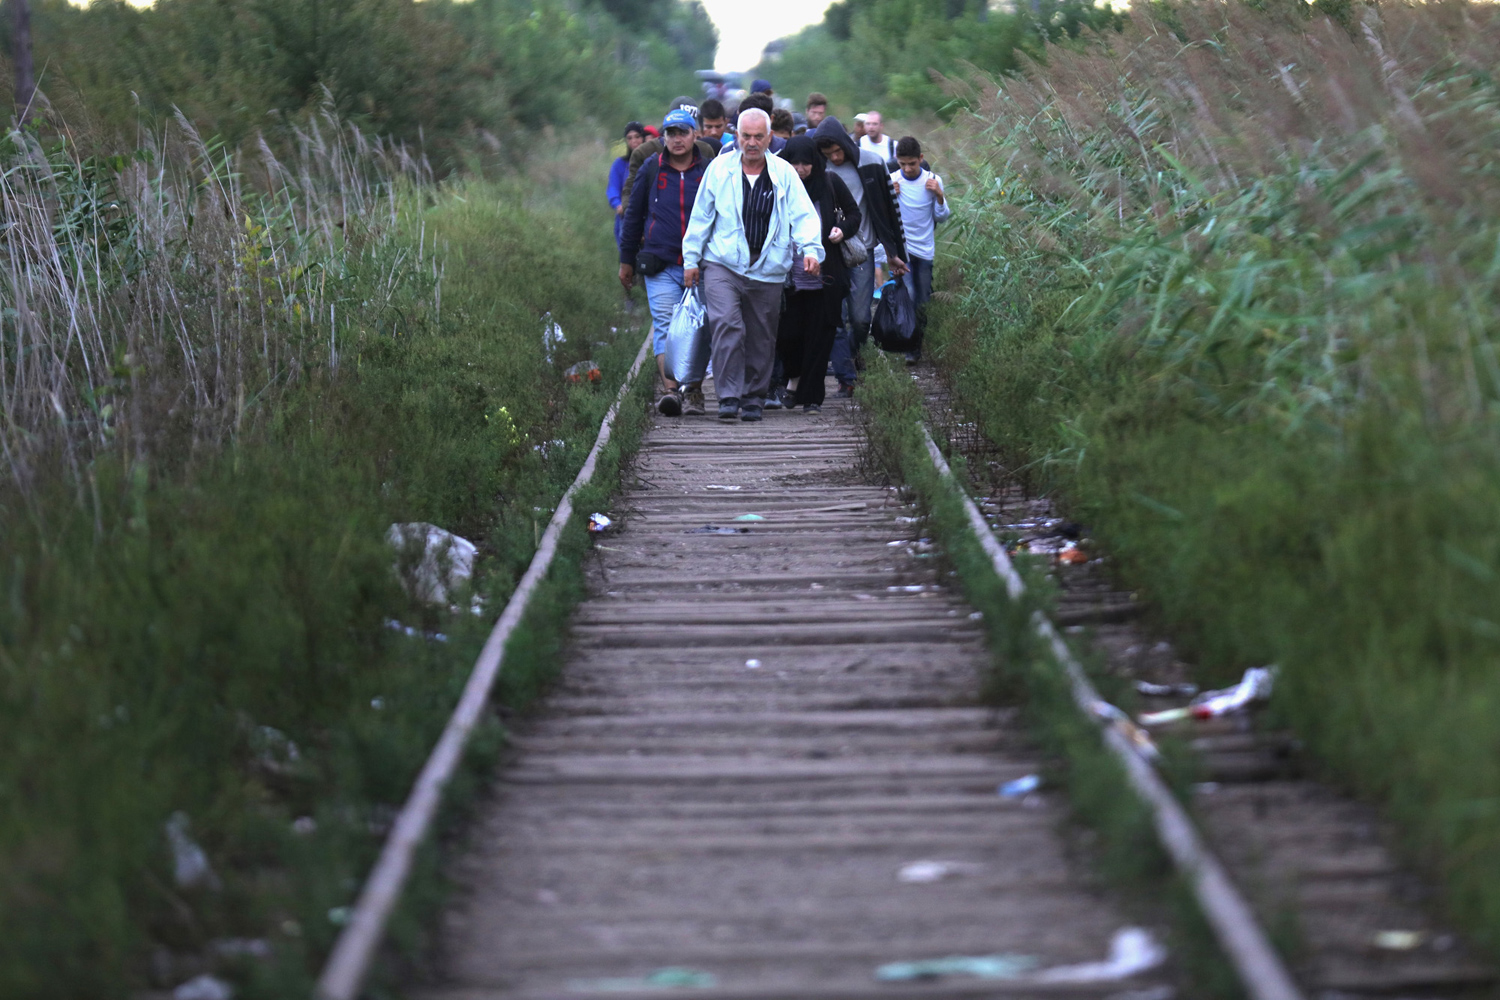 The path of migrants in Europe 04